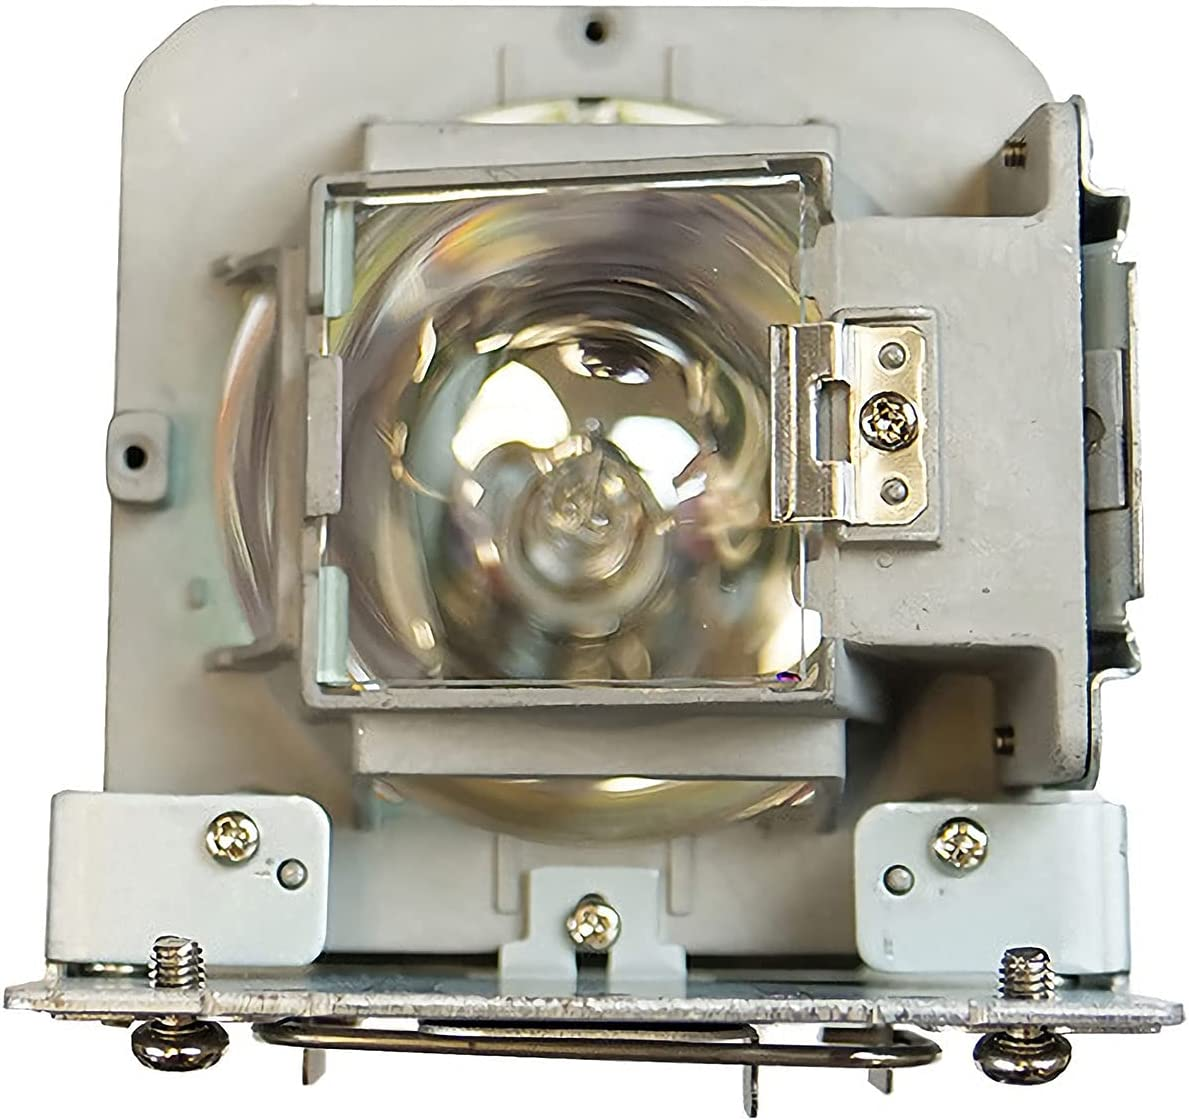 PHO BL-FP285A / DE.5811122606-SOT Genuine Original Replacement Bulb / Lamp with Housing for Optoma EH465 WU465 Projector (OEM Osram Bulb)